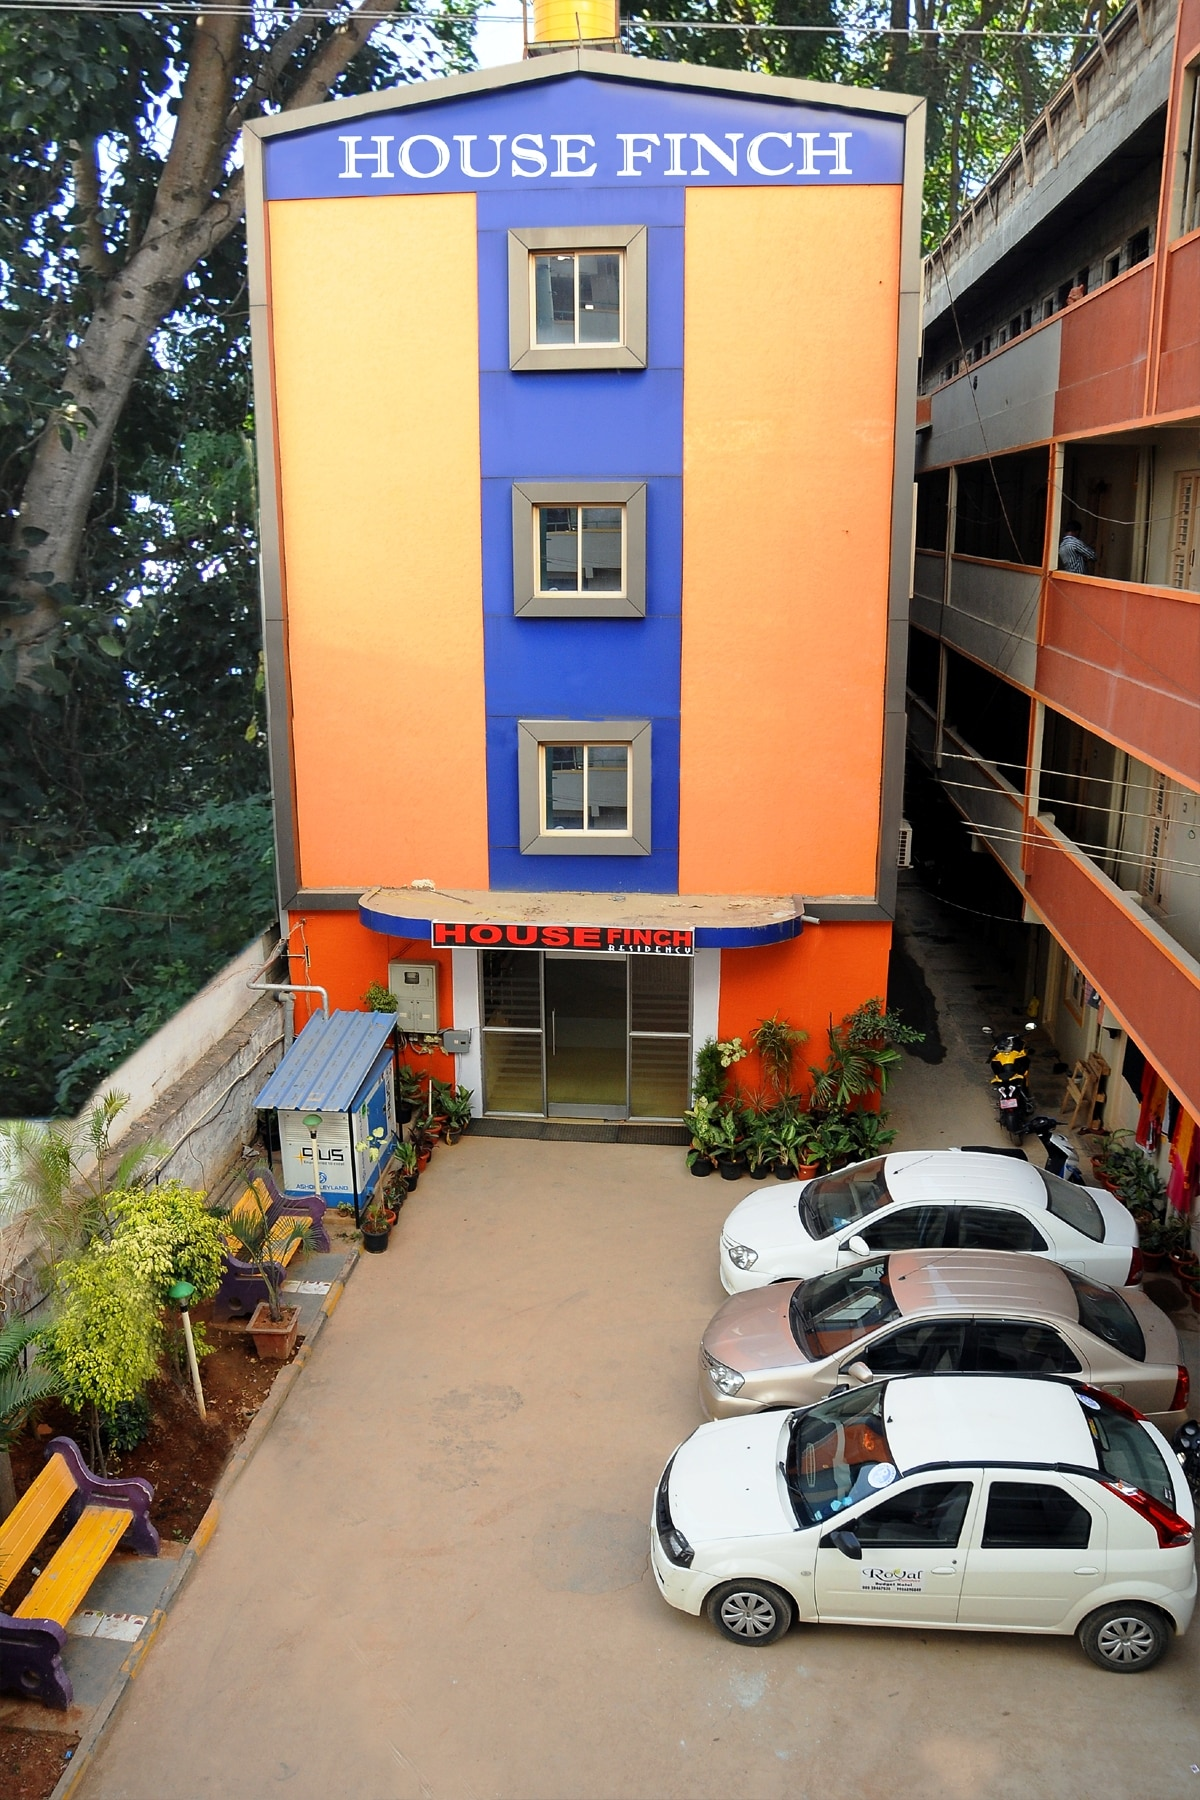 Housefinch residency, Nearest low budget hotel to international airport, bangalore. which offers 25% Discount on tariff.